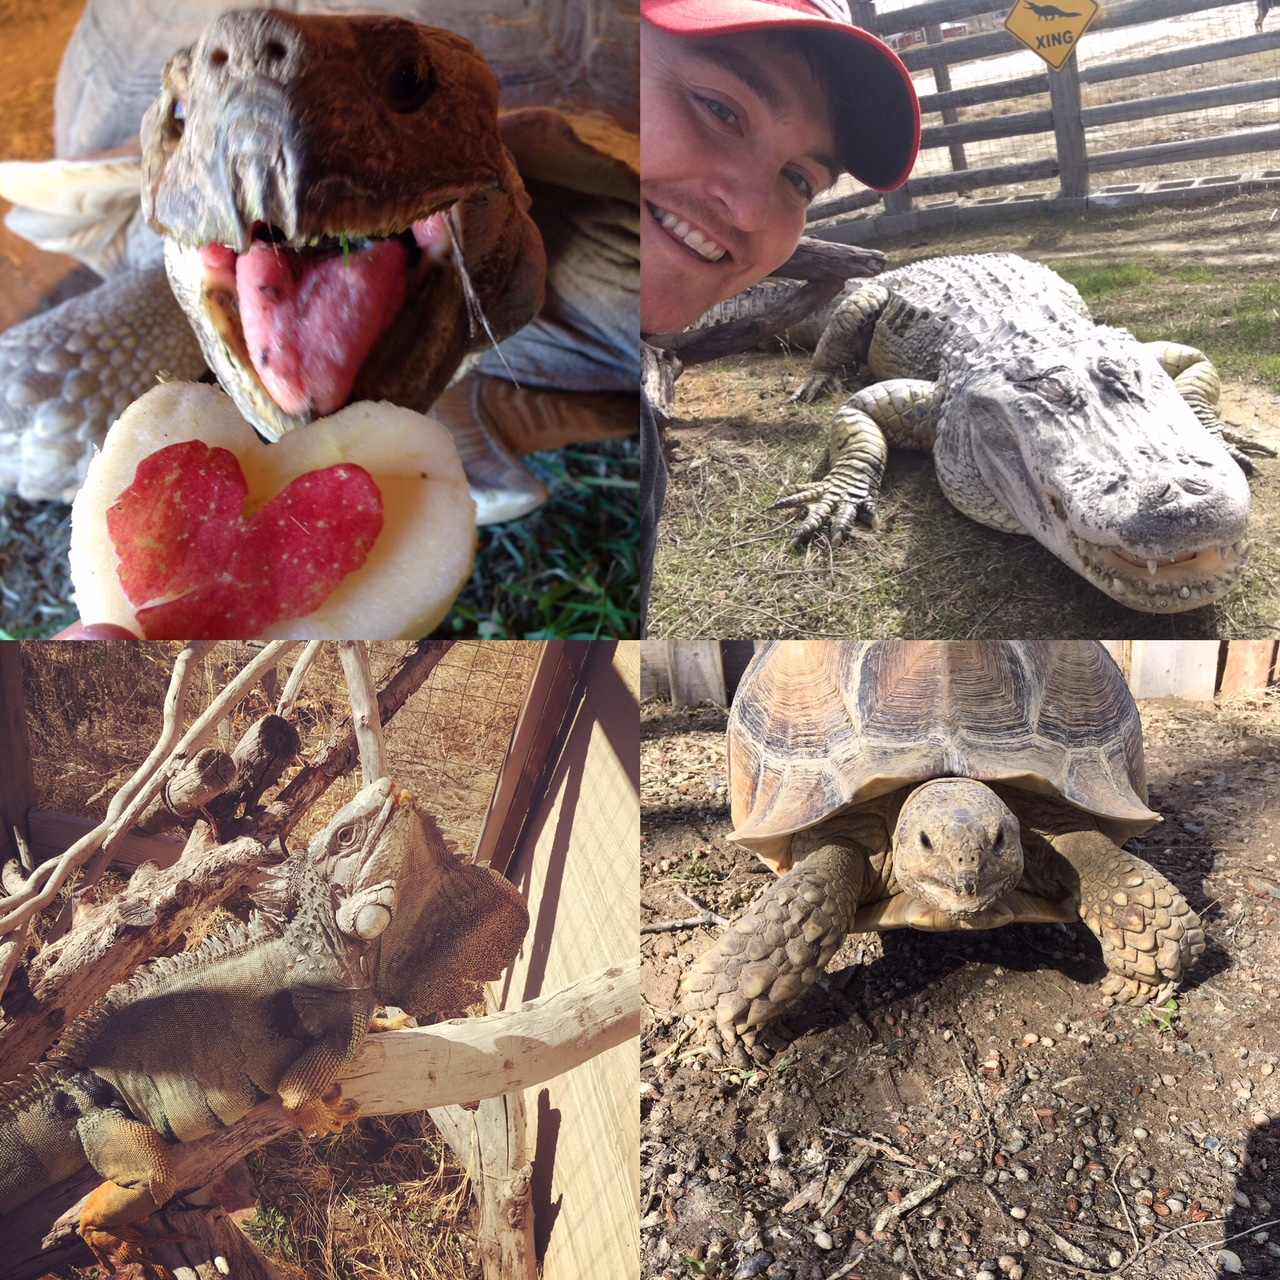 Top Left: Tank the Sulcata Tortoise on Valentine's Day. Top Right: Soni the alligator basking. Bottom Left: Godzilla the Green Iguana. Bottom Right: Hank the Sulcata Tortoise.